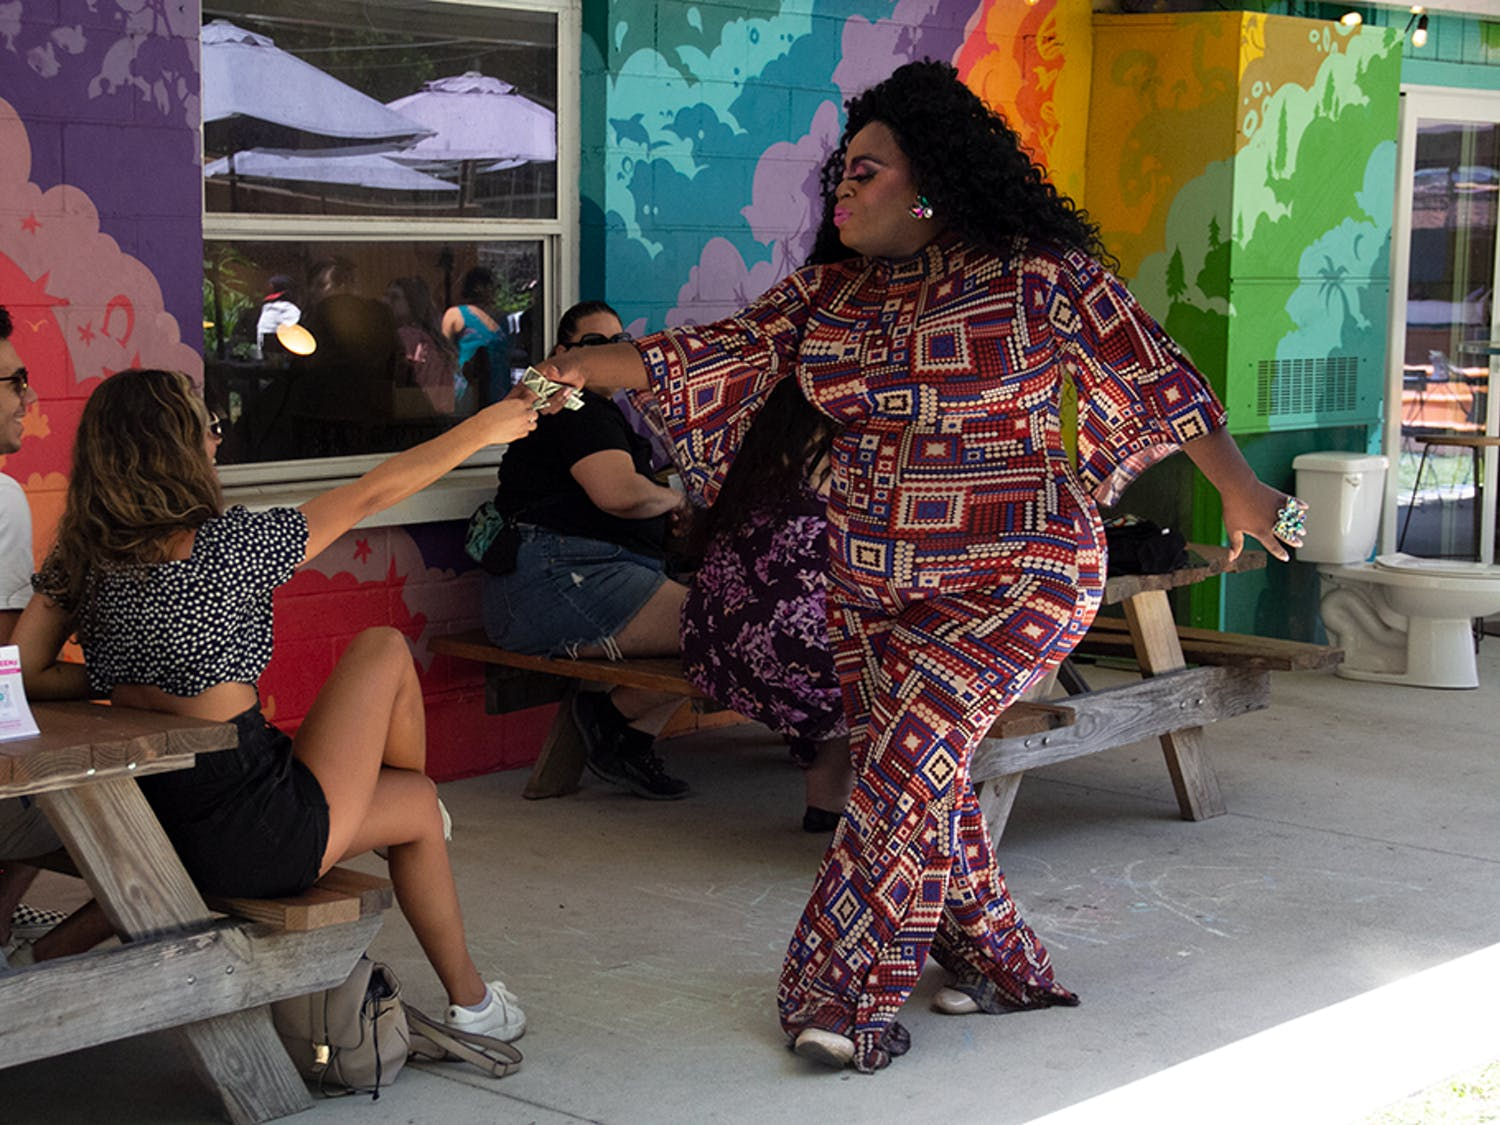 Drag Queen performer Ceazia Giovanni Kreshé gets tipped for her dance moves.